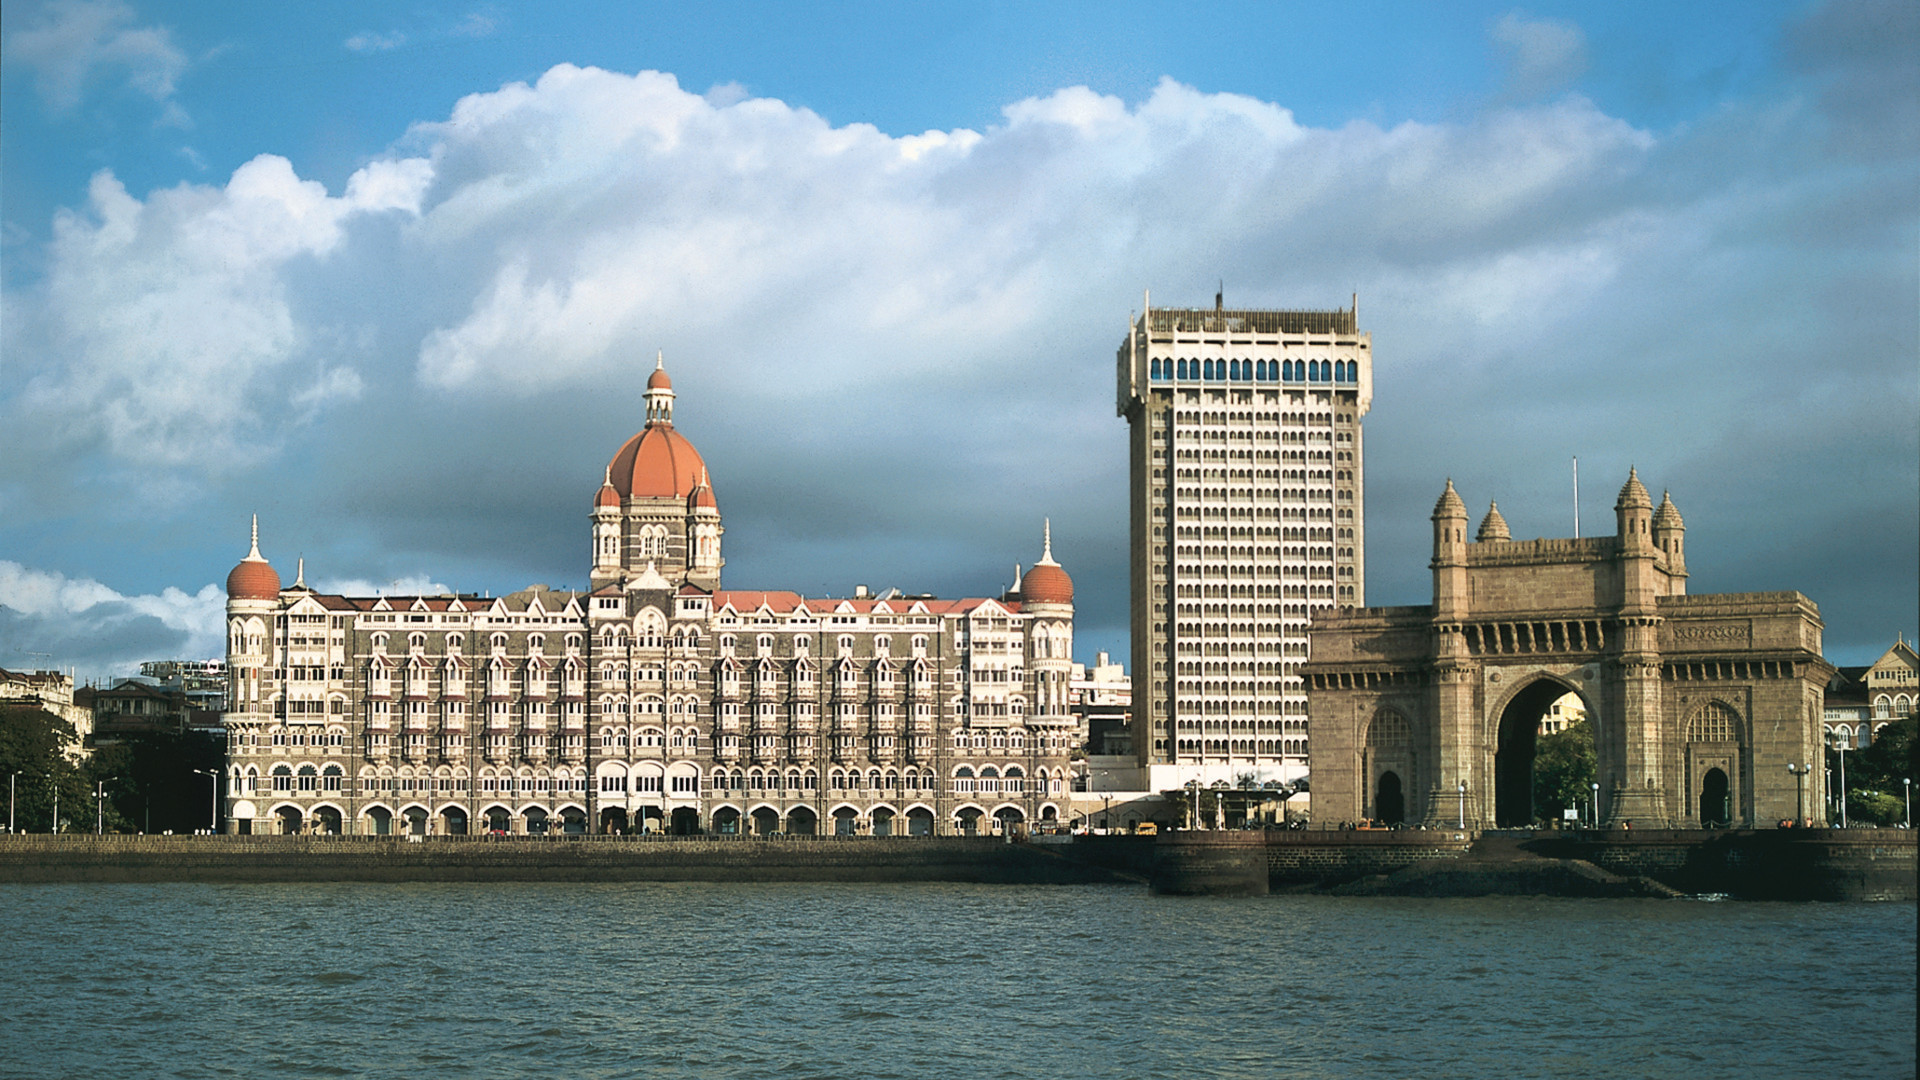 IHCL ties up with Singapore's GIC to invest Rs 4,000 crore in hotel acquisitions